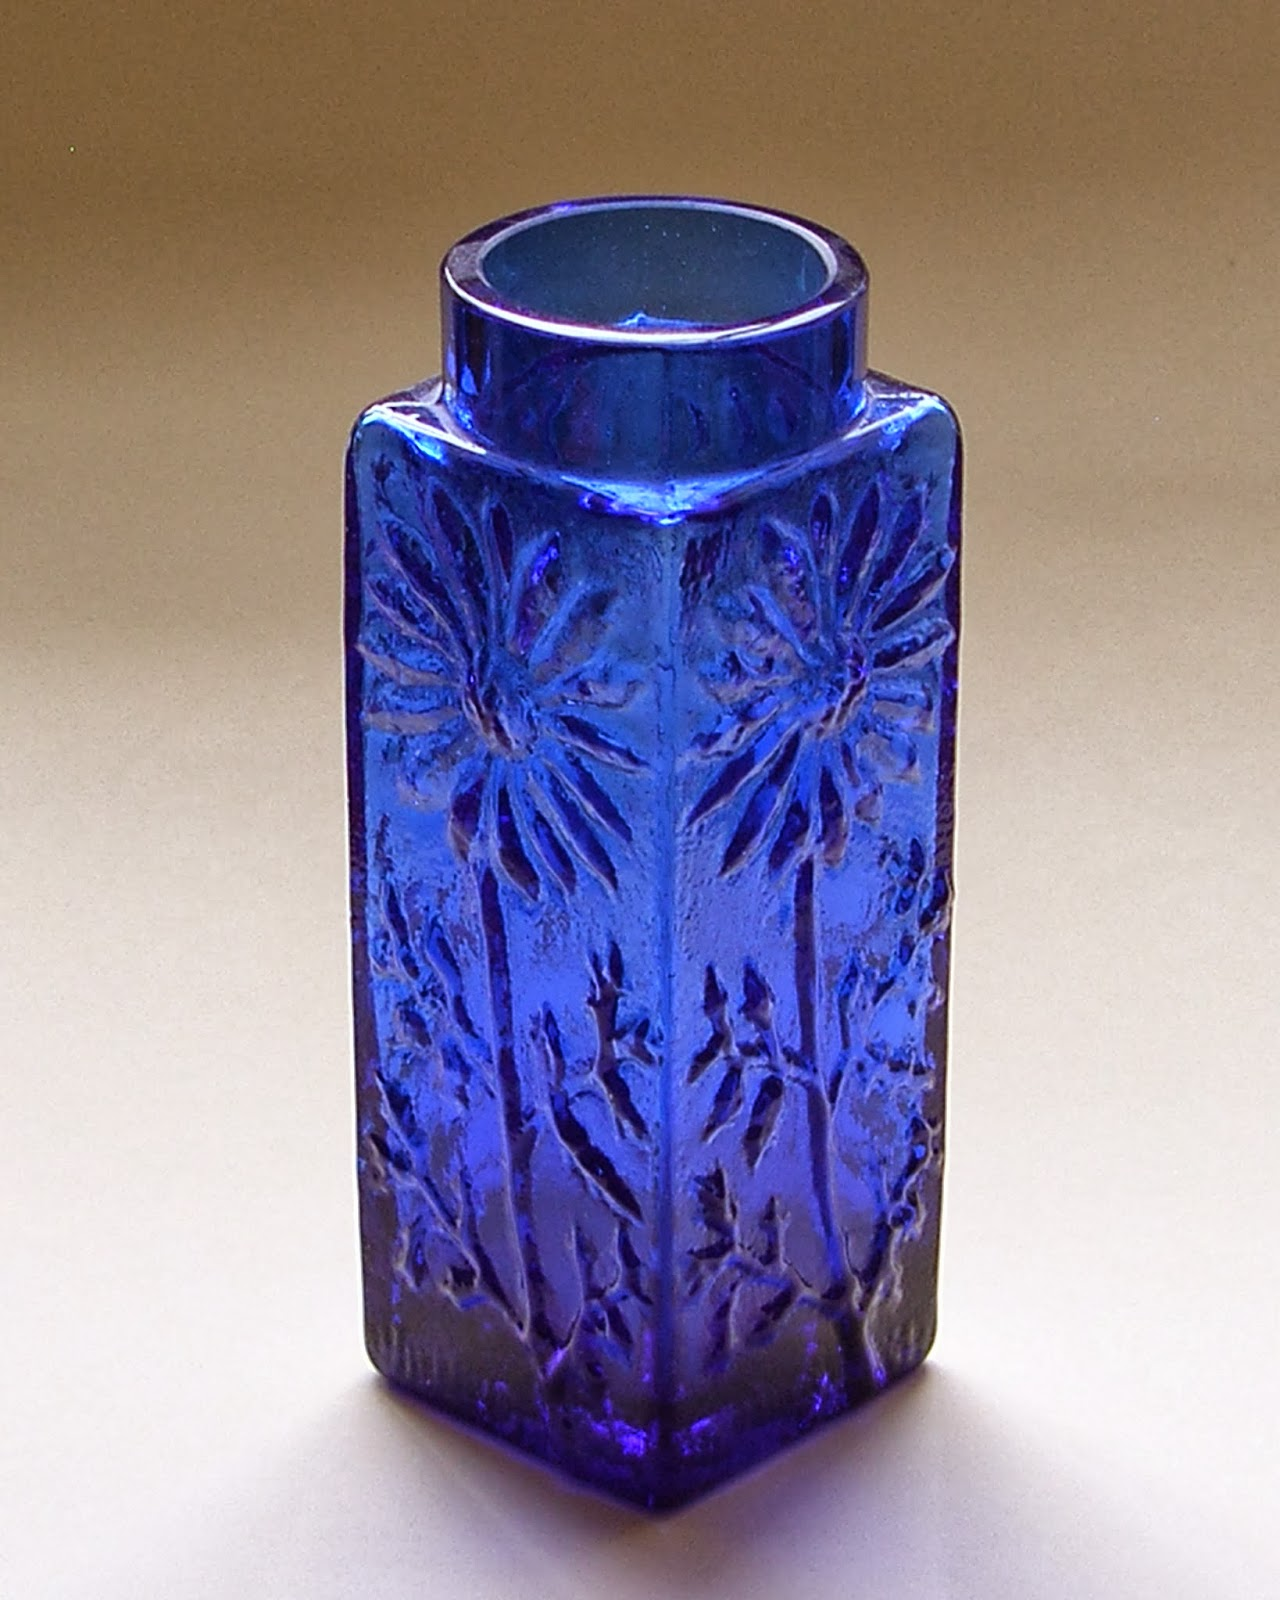 Frank Thrower Glass Designs marguerite vases